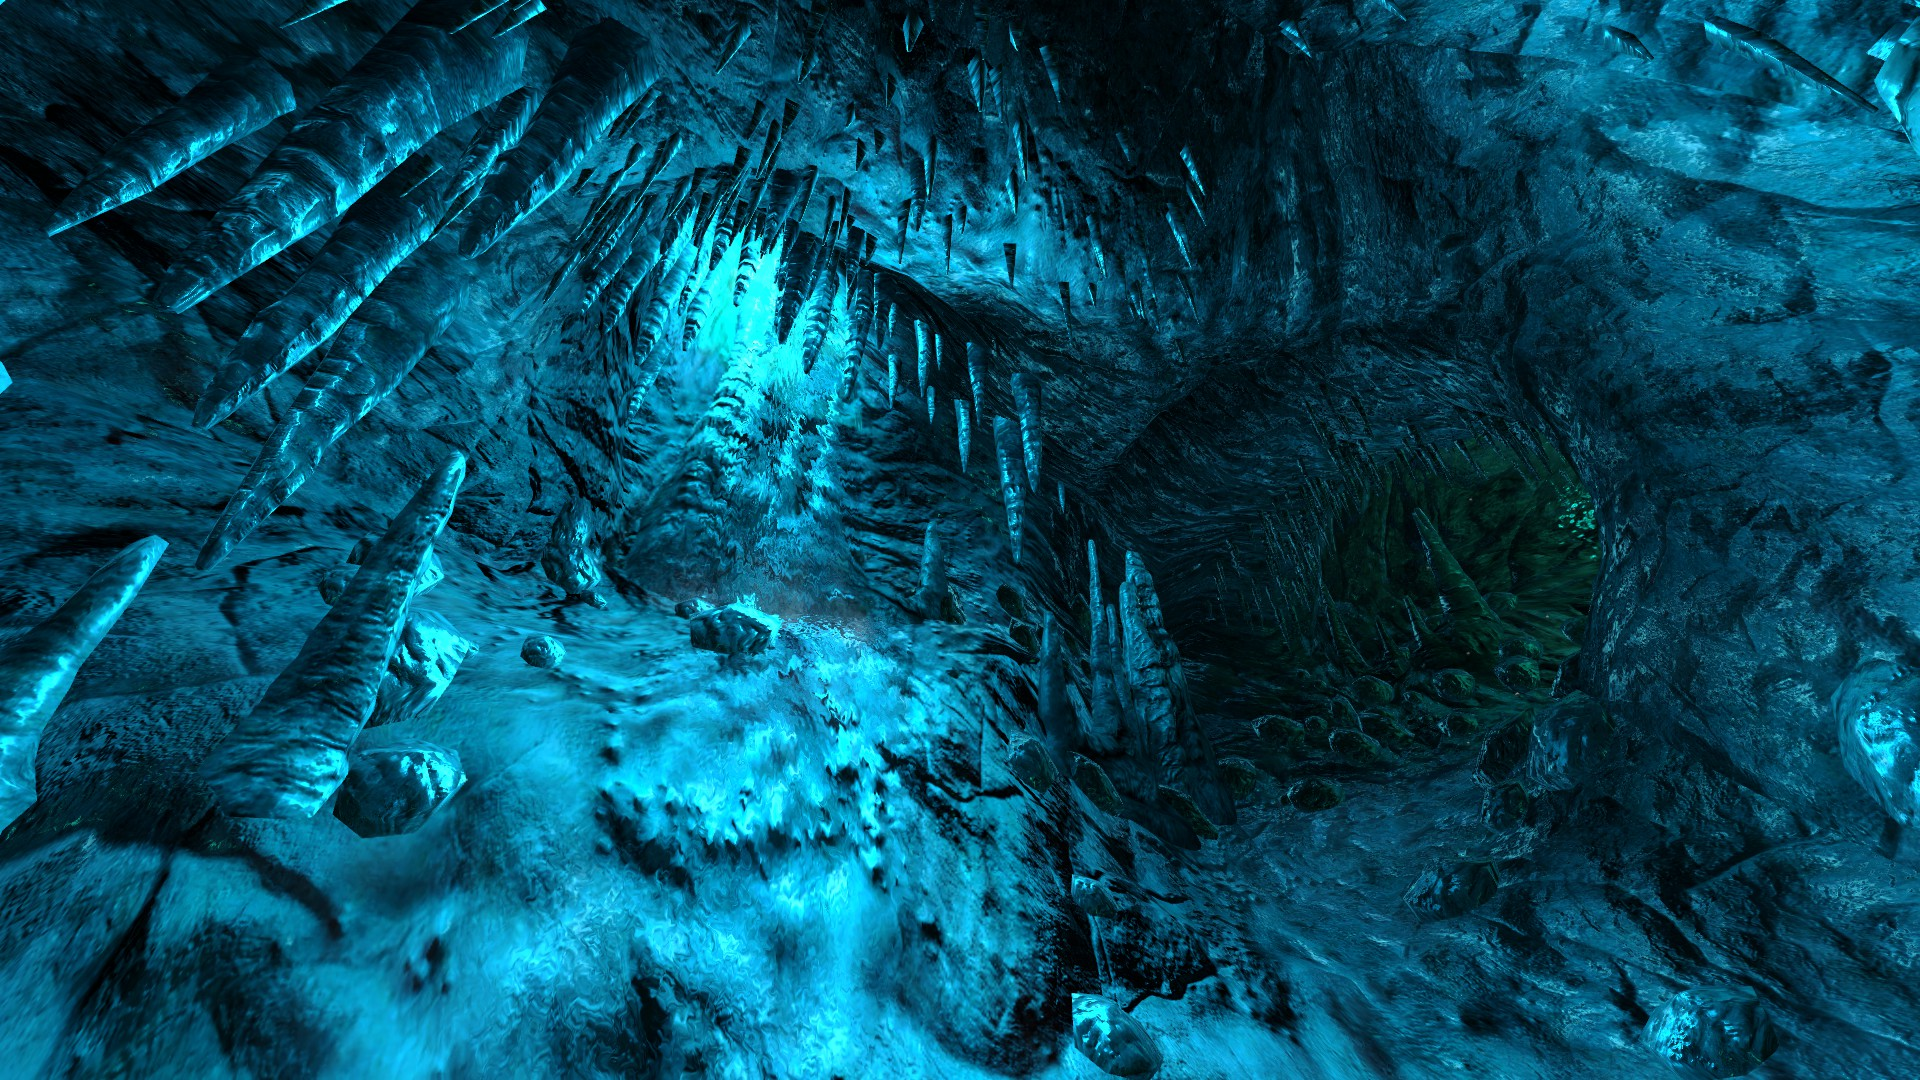 Wallpaper Cave: 32 Awesome HD Cave Wallpapers